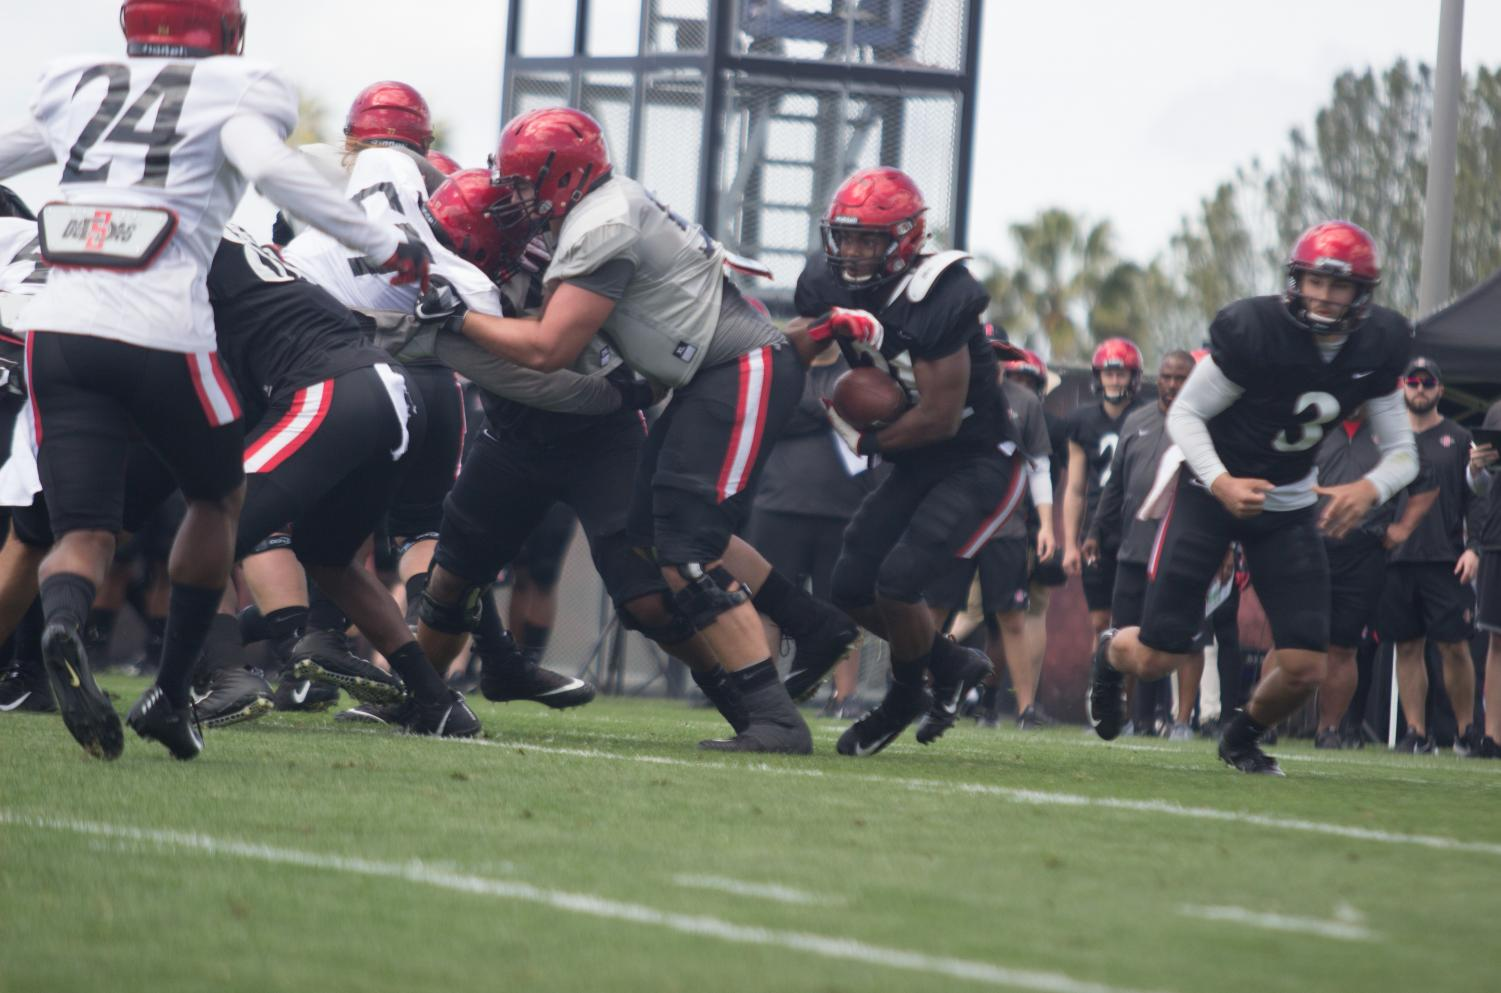 Sophomore running back Chance Bell carries the ball during the Aztecs spring football game on March 23 at the SDSU practice field.